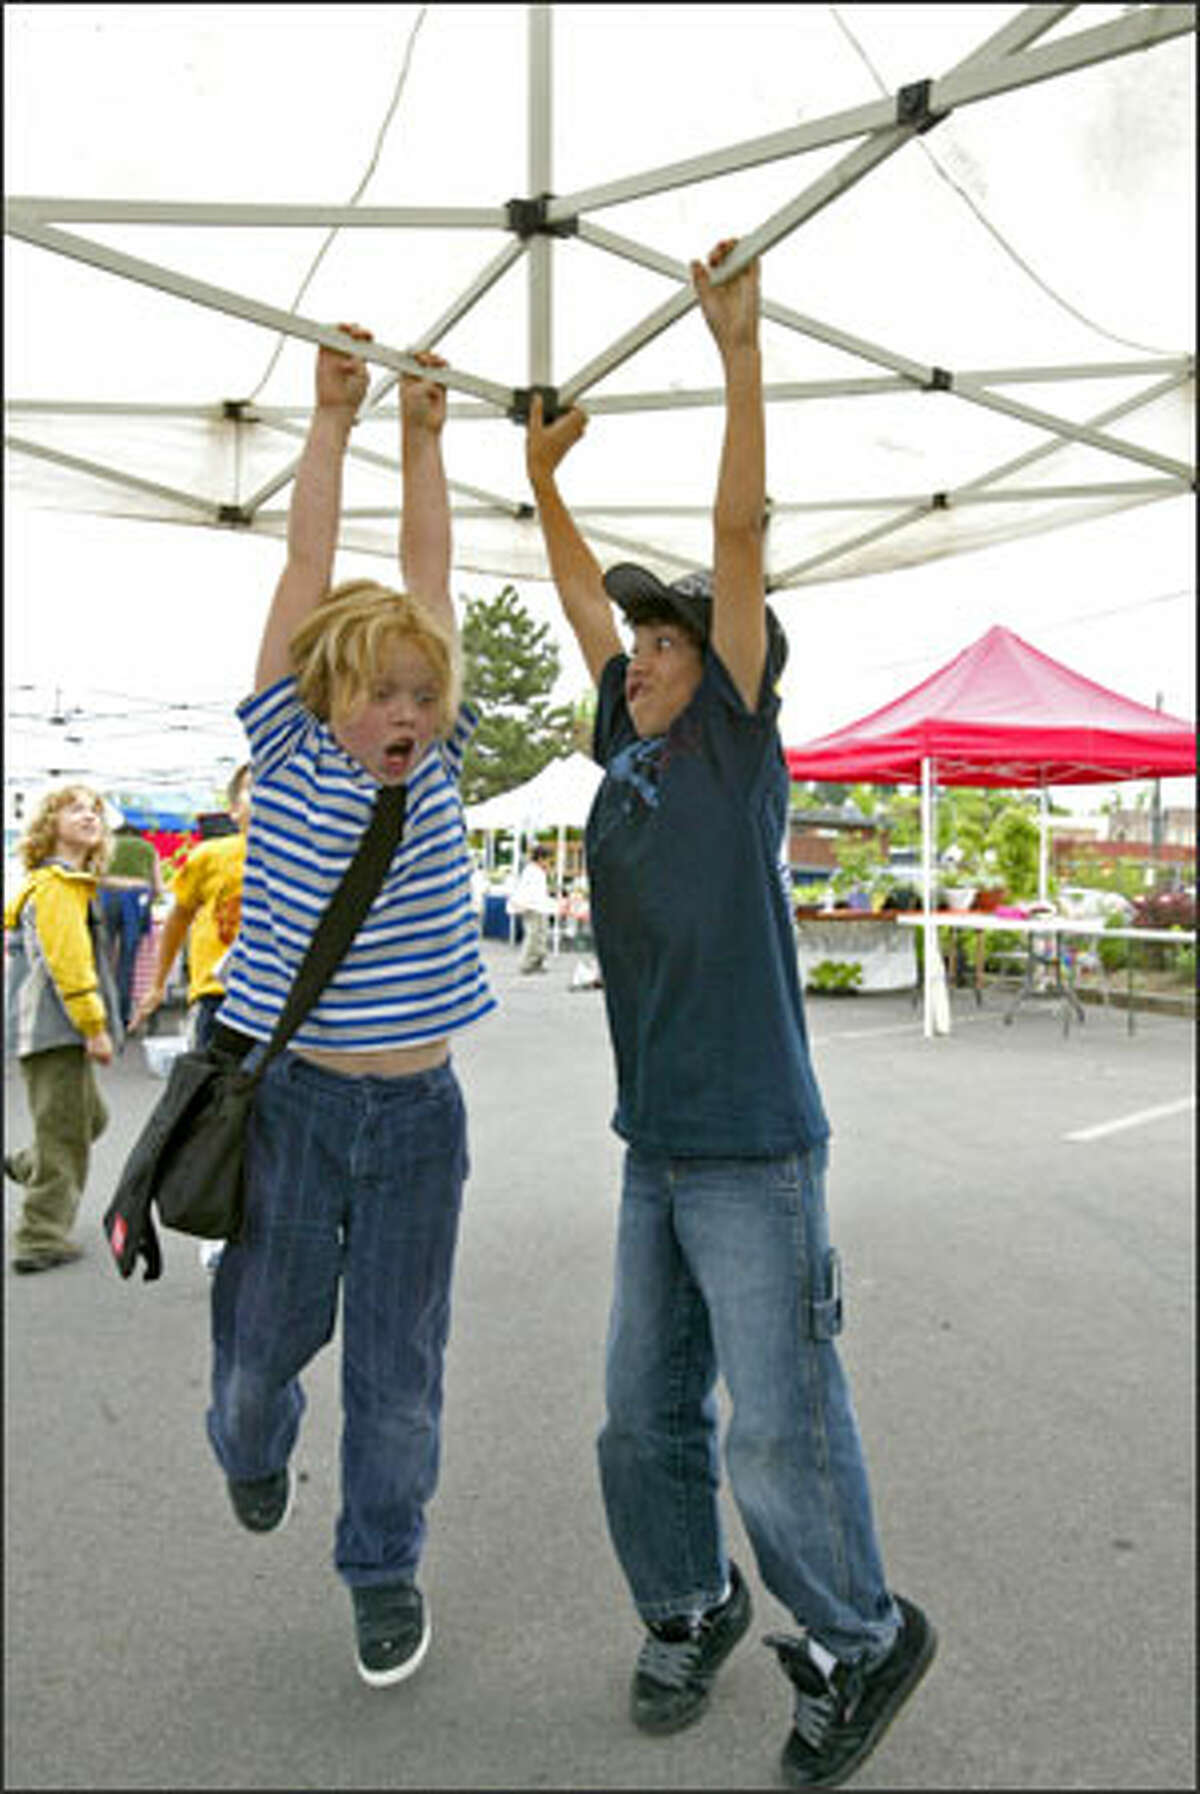 The Columbia City Farmers Market opened for its eighth year with help from Orca at Columbia Elementary School students. Third-graders Lowell Horvitz, left, and Manny Talevich are taken by surprise as they are lifted off the ground while helping raise a pop-up canopy for a vendor's stand.